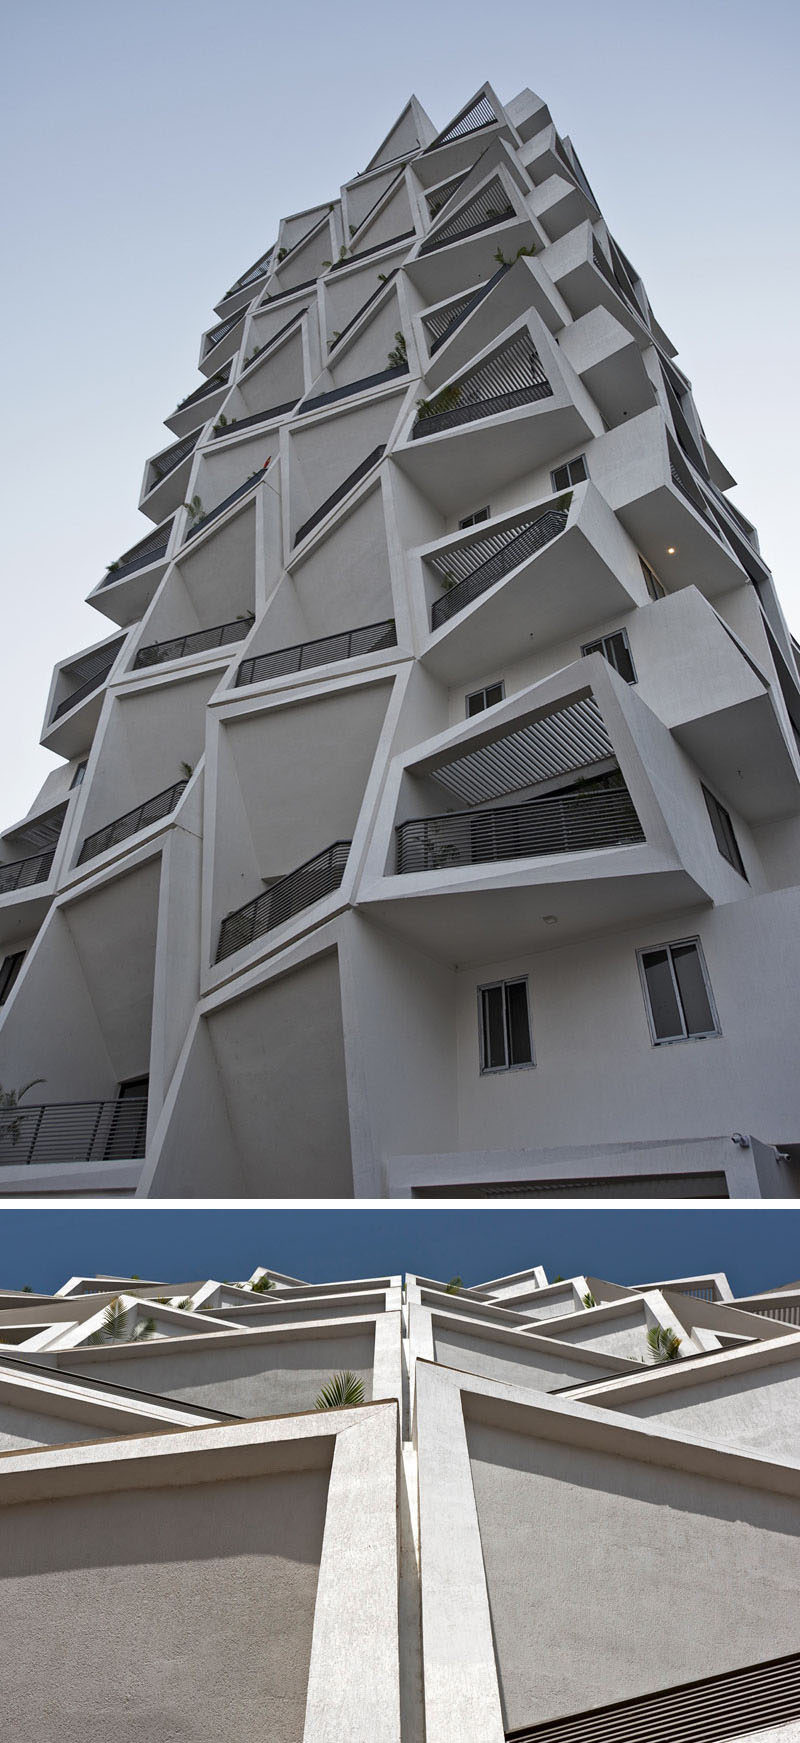 Sanjay Puri Architects have designed Ishatvam 9, a 15 storey residential building in Ranchi, India, that features uniquely shaped private outdoor spaces for each apartment.